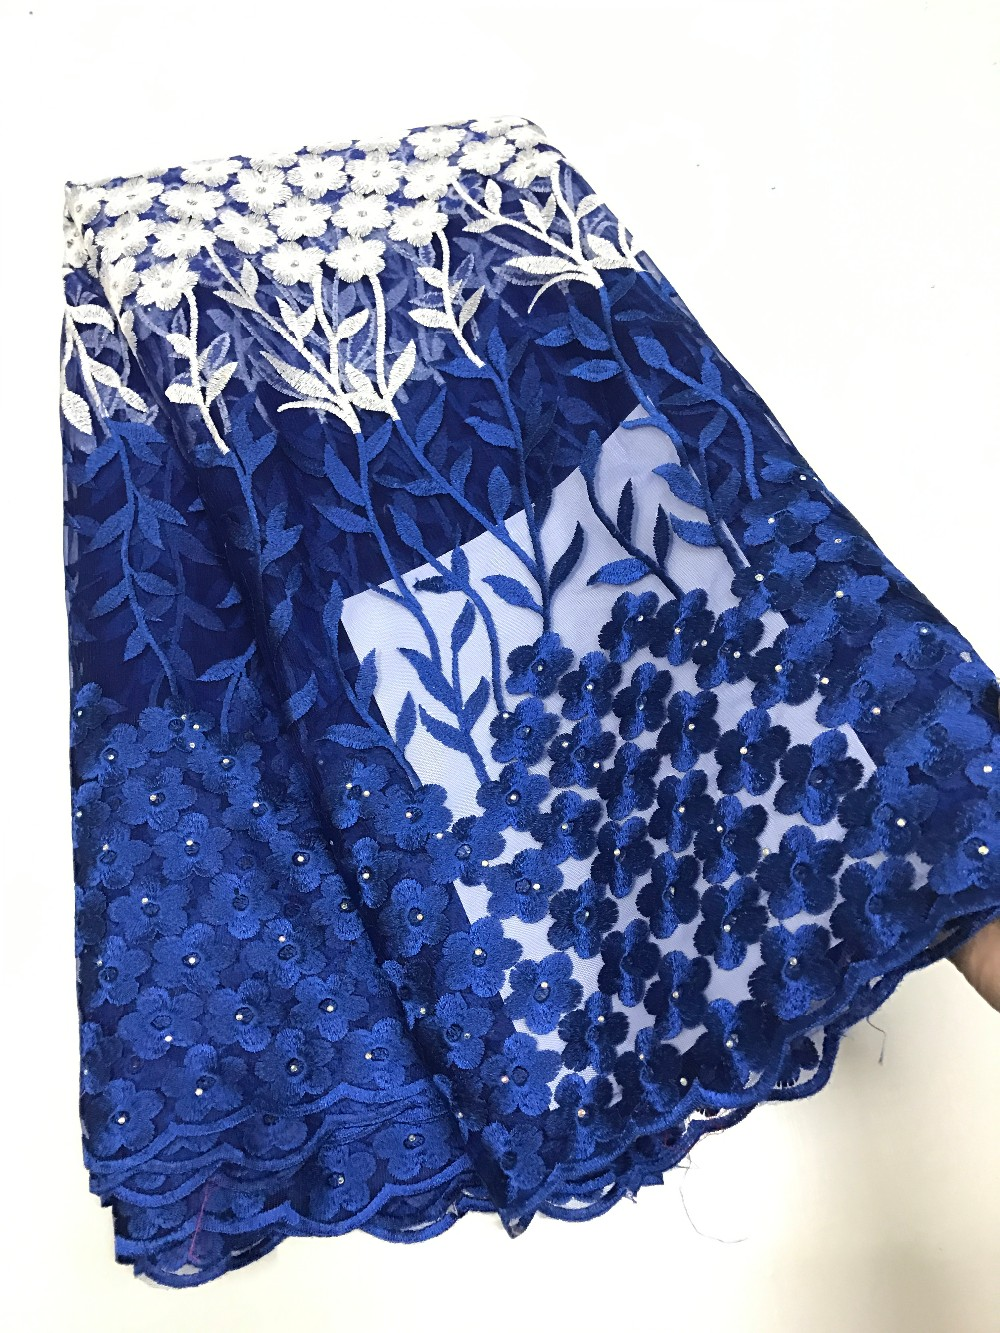 For big wedding party tulle lace with stones voile lace fabric nigerian